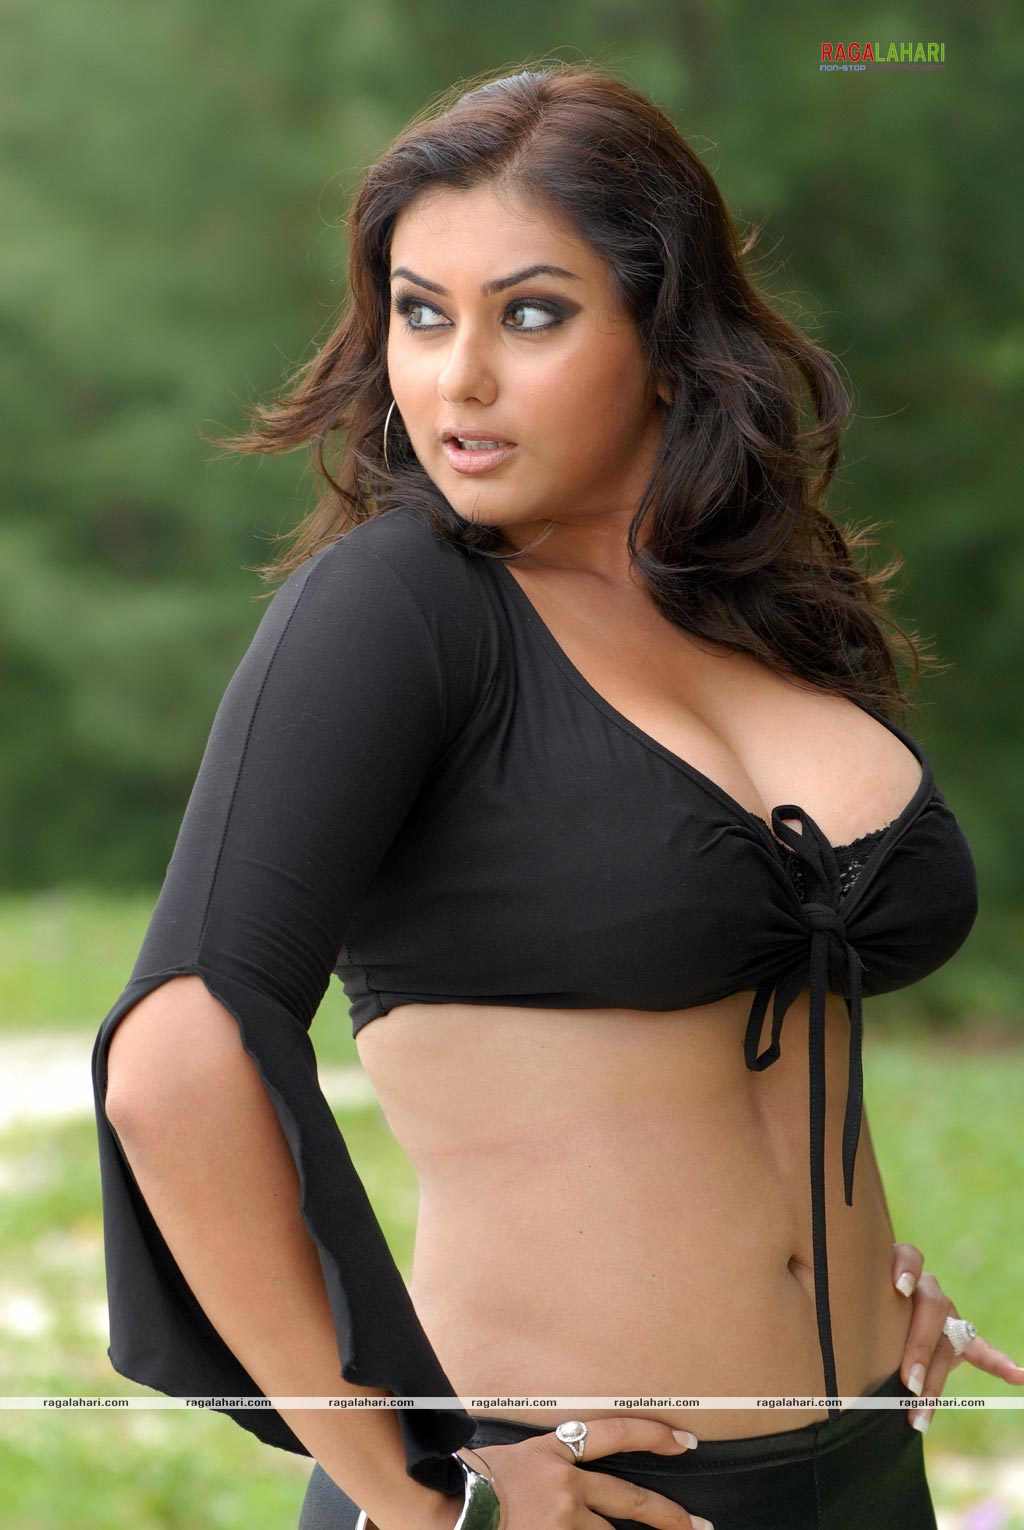 Namitha hot image and sexy wallpapers